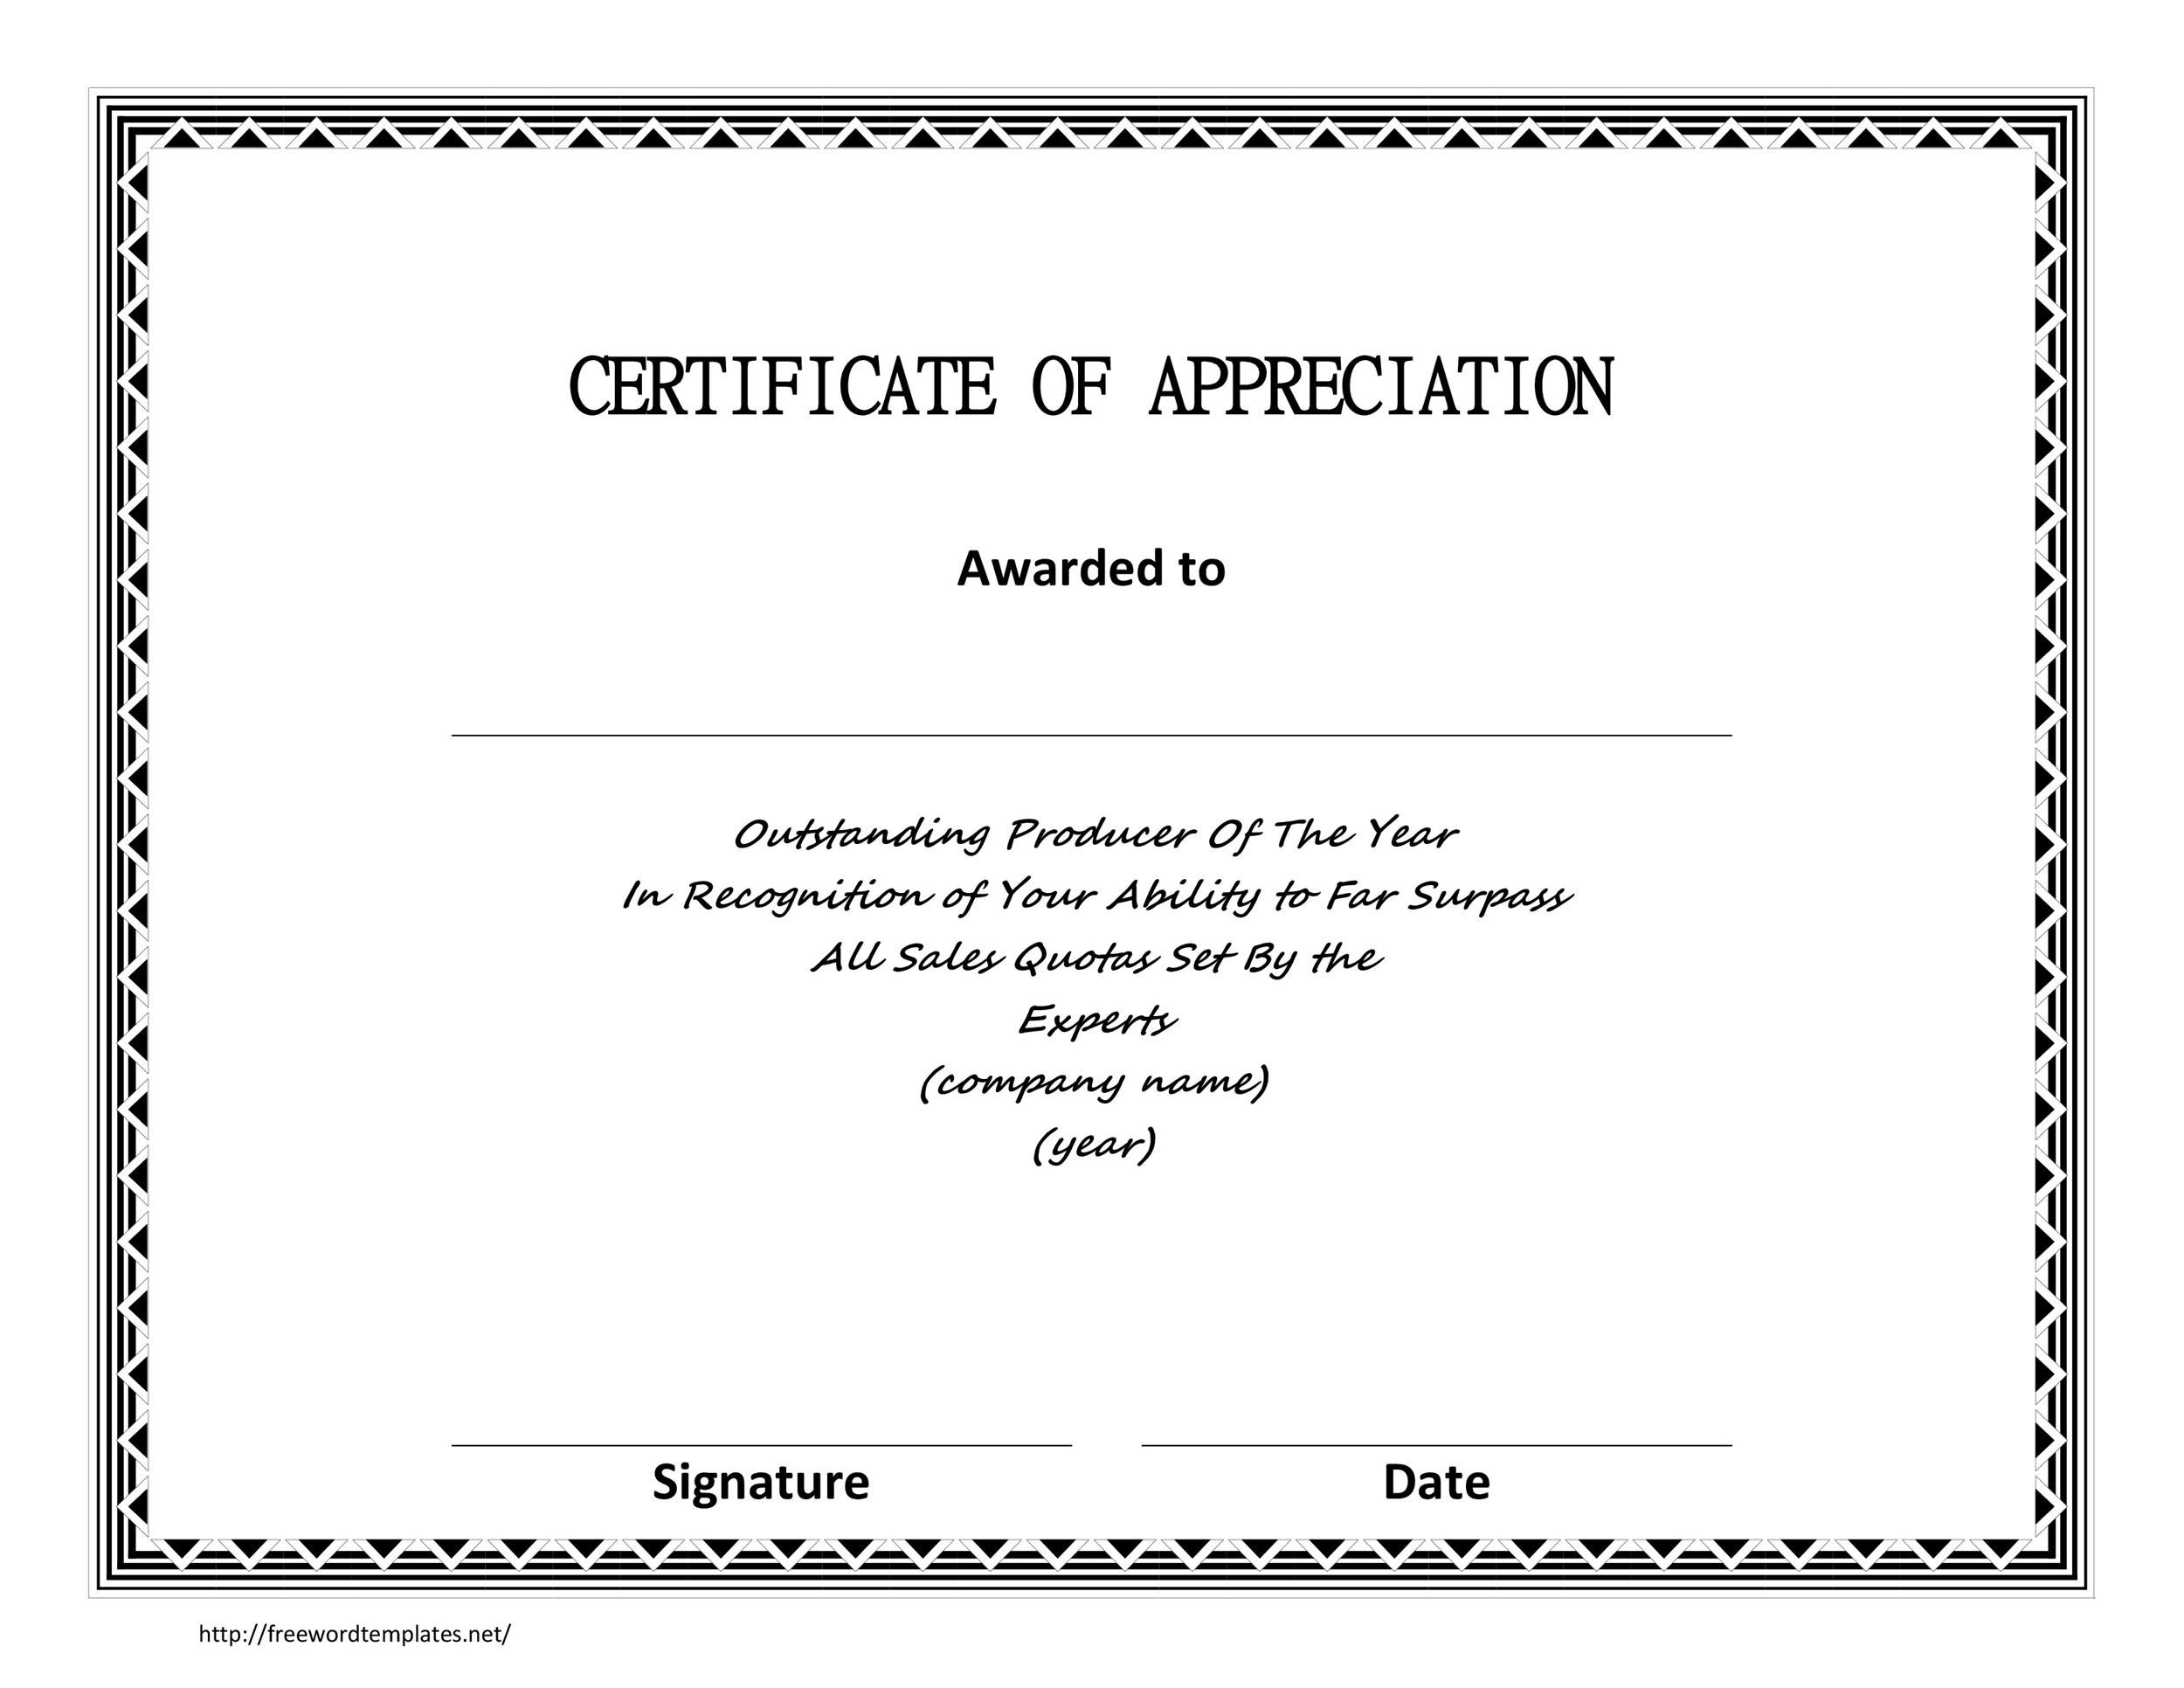 pastor appreciation certificate template free - 30 free certificate of appreciation templates and letters